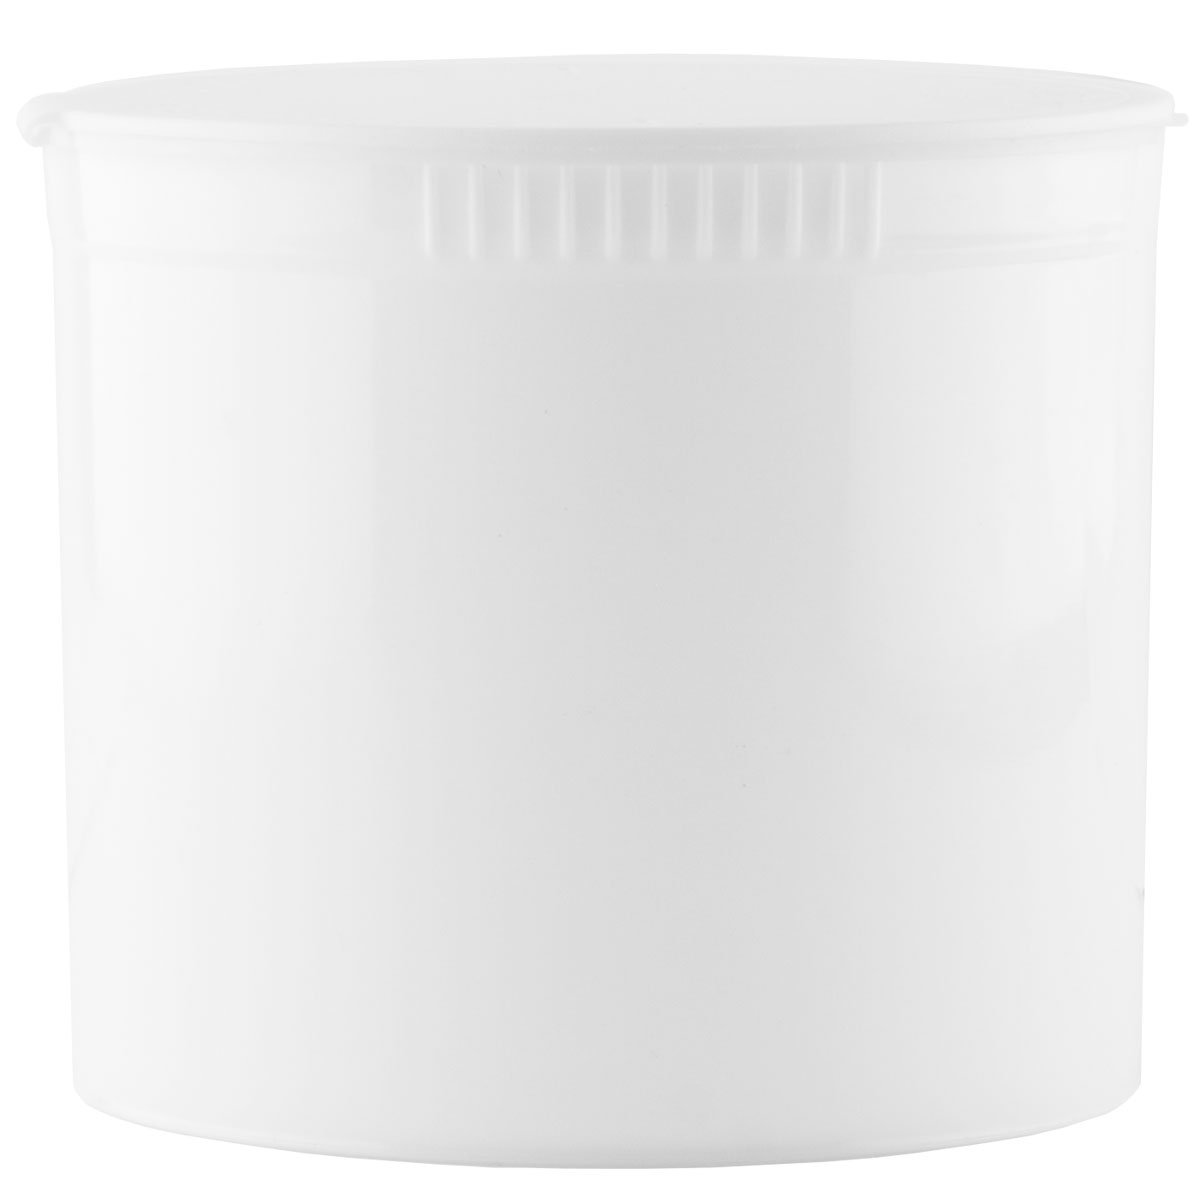 Child Resistant Pop Top Containers - 1 Case (White, 90 Dram)